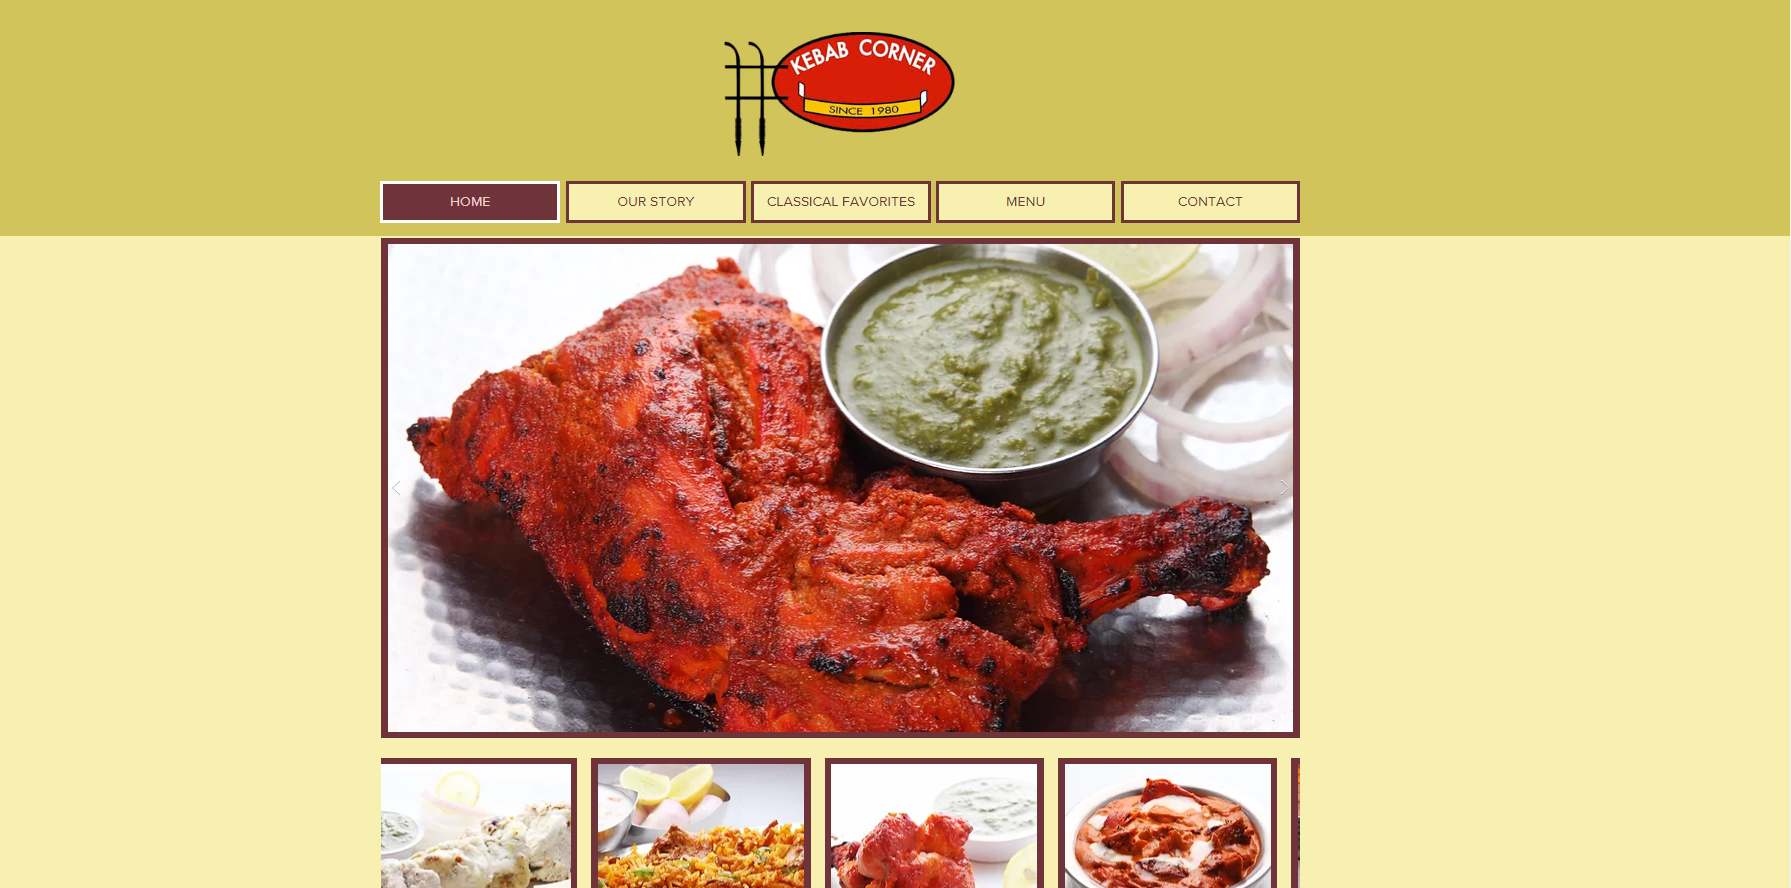 Kebab Corner Website